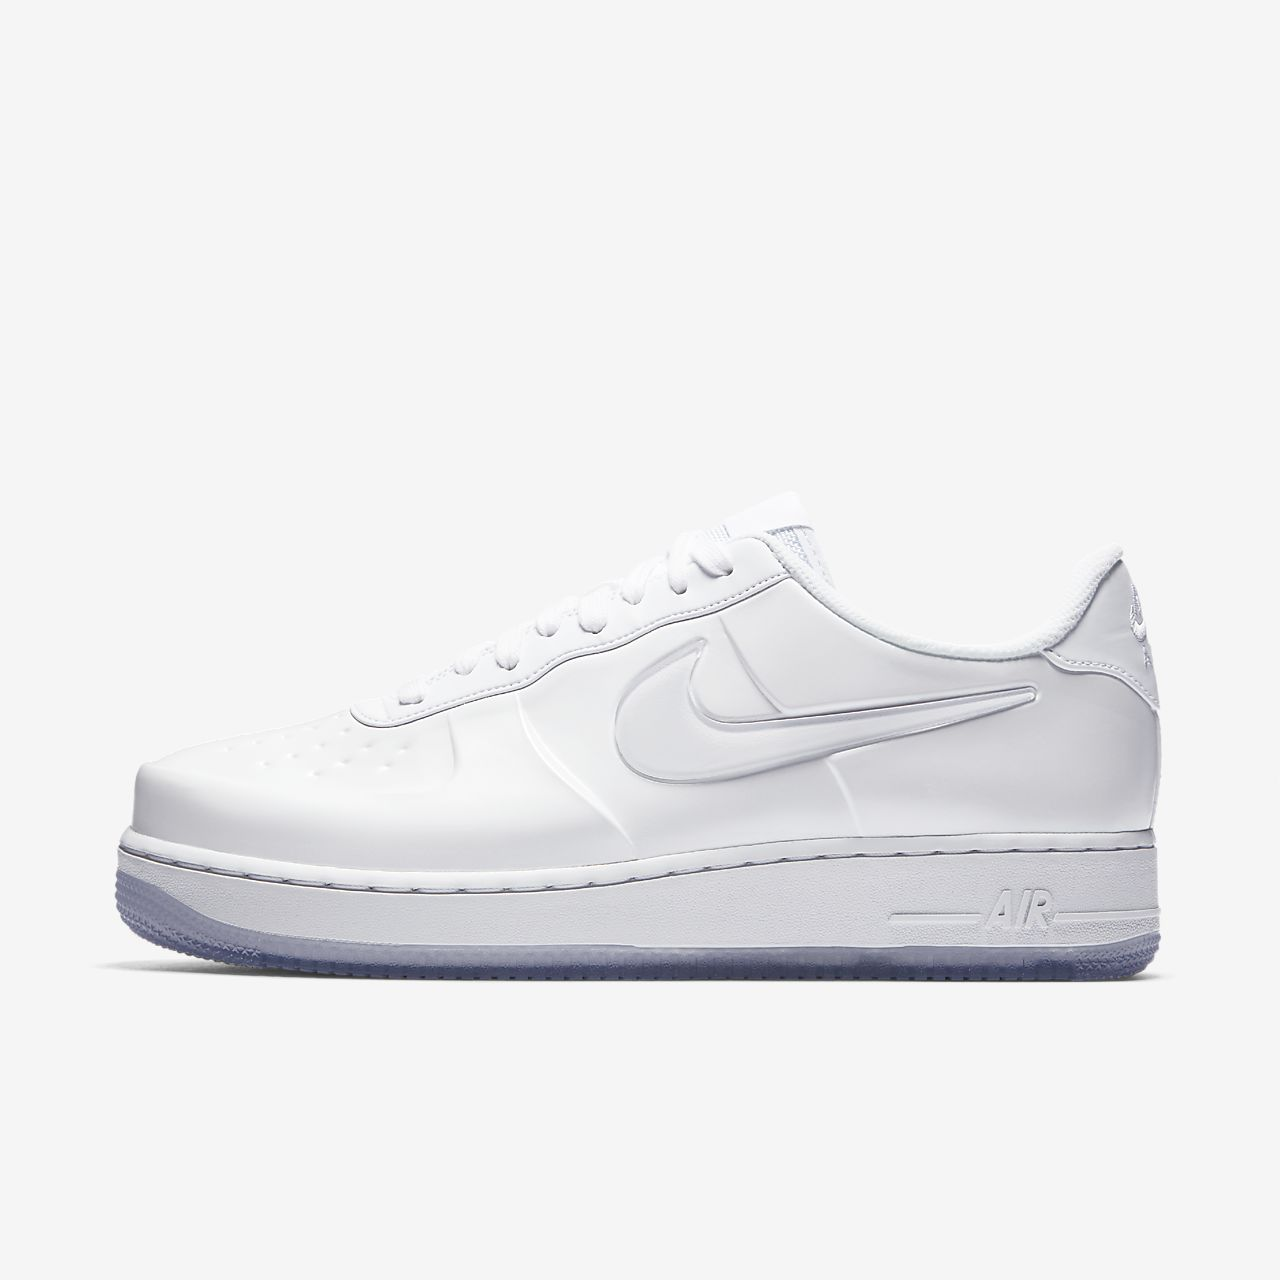 brand new 4150d 36660 ... Мужские кроссовки Nike Air Force 1 Foamposite Pro Cup